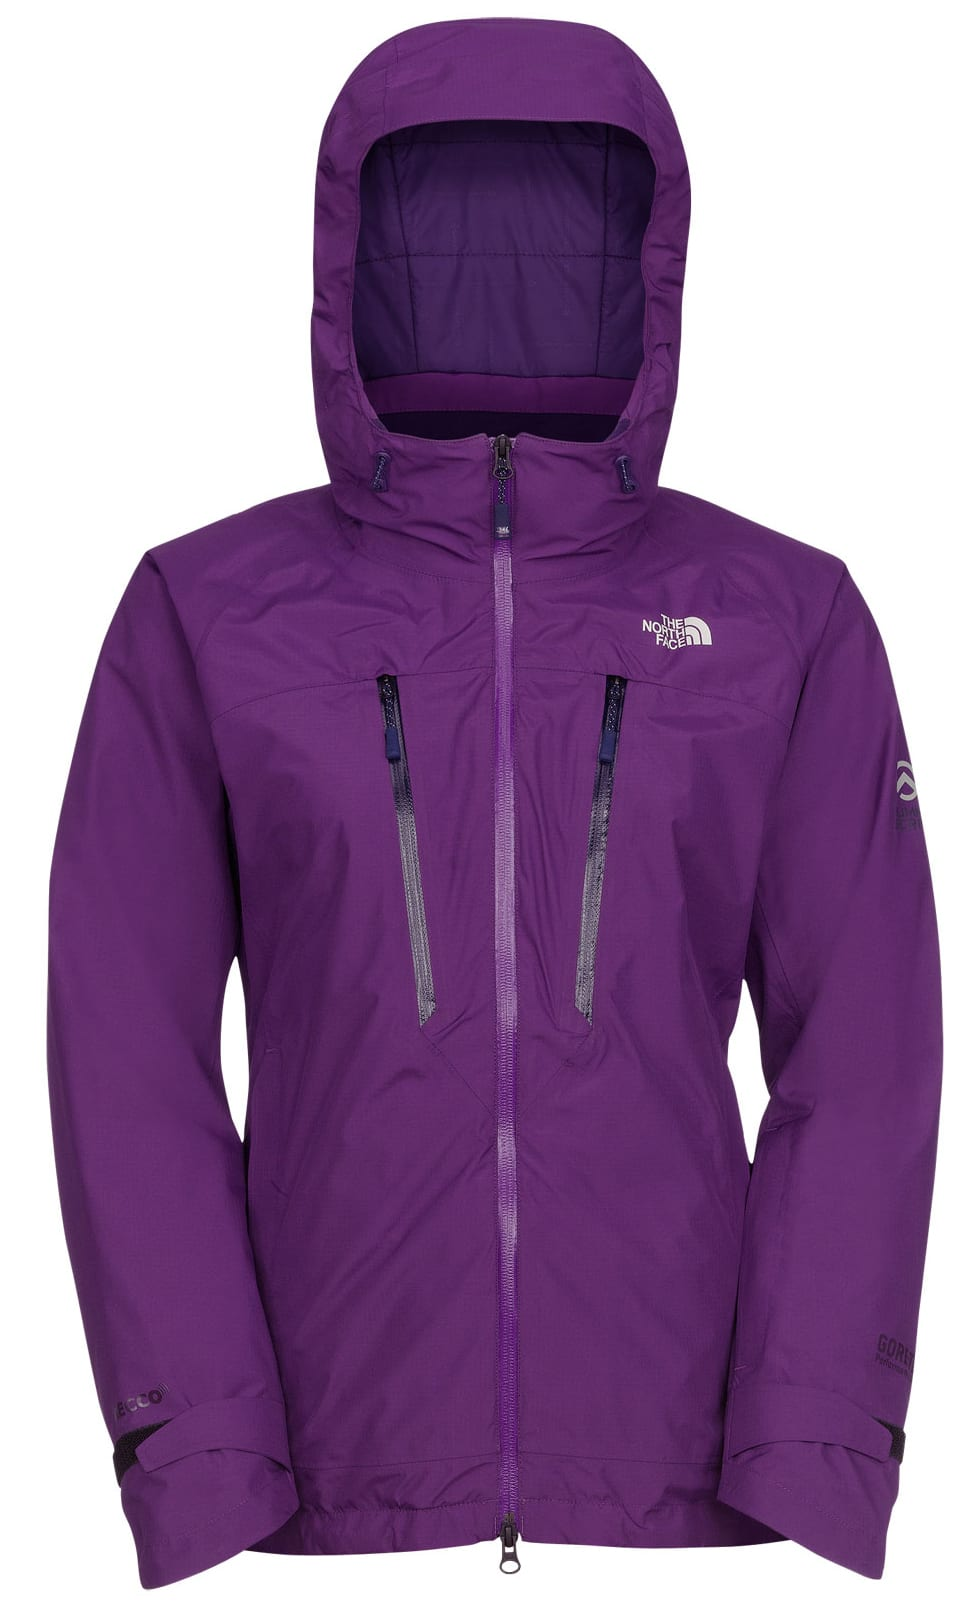 Shop for The North Face Elemot Ski Jacket Gravity Purple - Women's